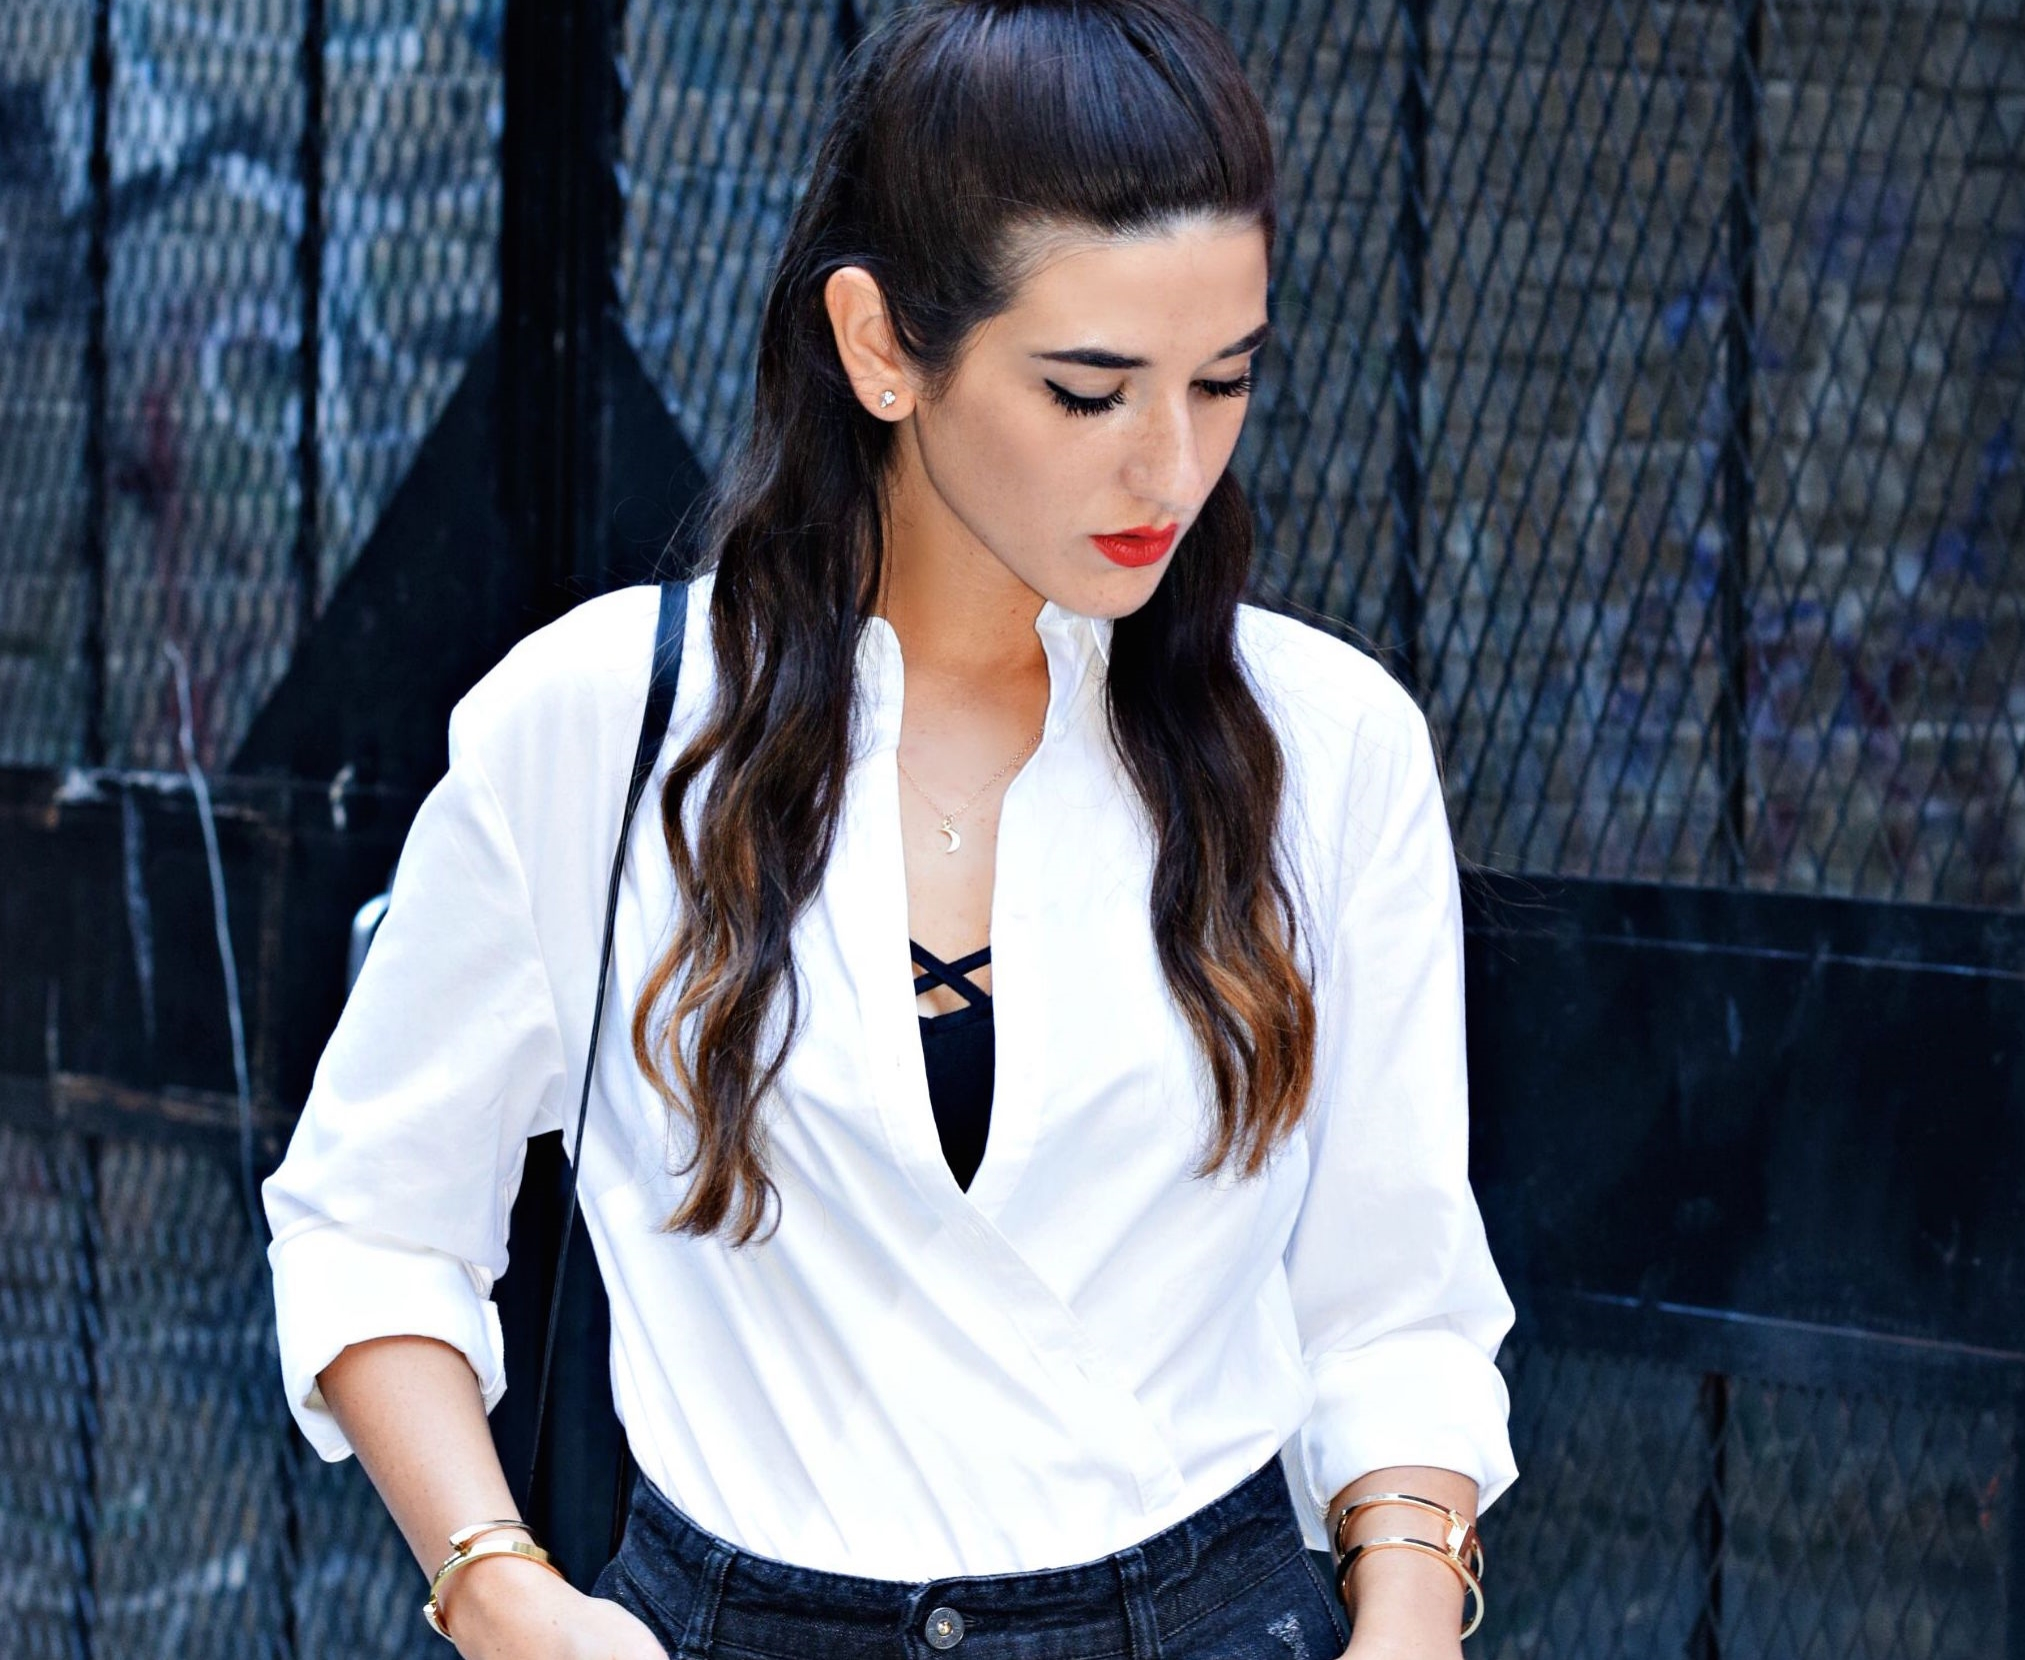 Coco & Marie Moon Necklace Giveaway Louboutins & Love Fashion Blog Esther Santer NYC Street Style Blogger Lifestyle Topknot Bun Denim Ripped Jean Skirt White Button Down Zara Black Box Clutch Bag Bralette Nordstrom Booties Gold Jewelry Women Girl Shop.JPG